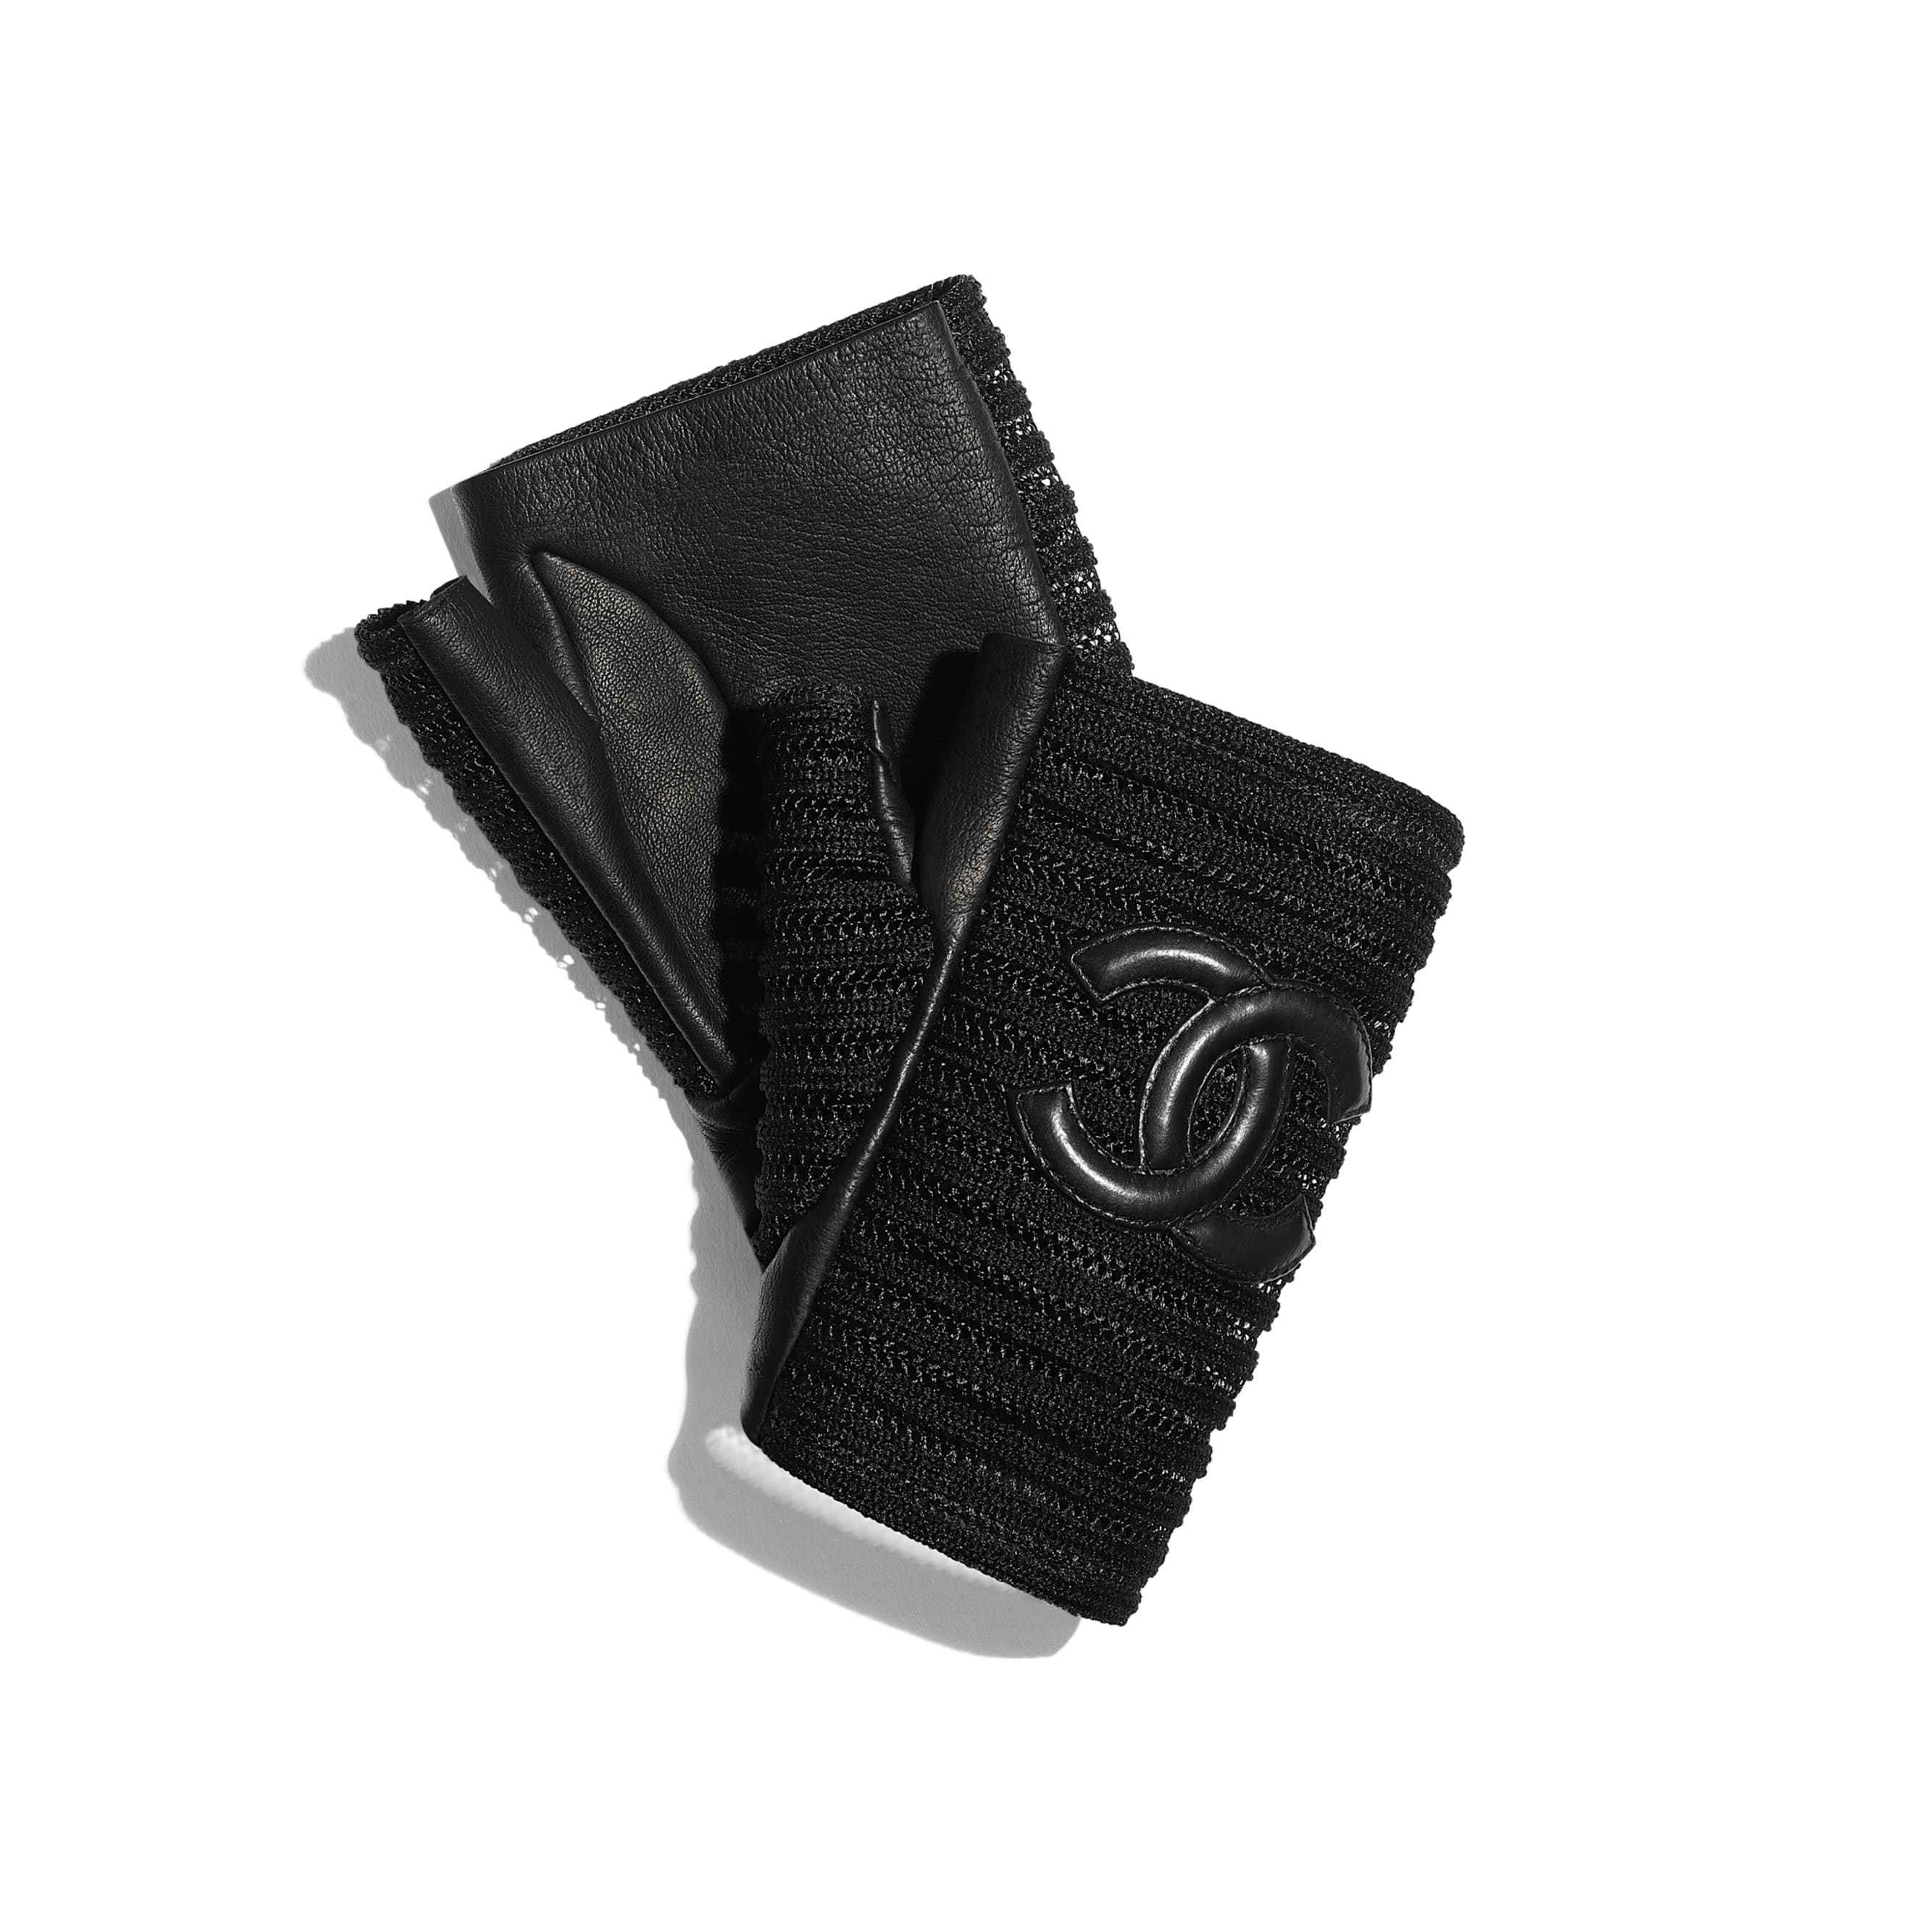 Gloves - Black - Lambskin & Synthetic Fibers - CHANEL - Alternative view - see standard sized version